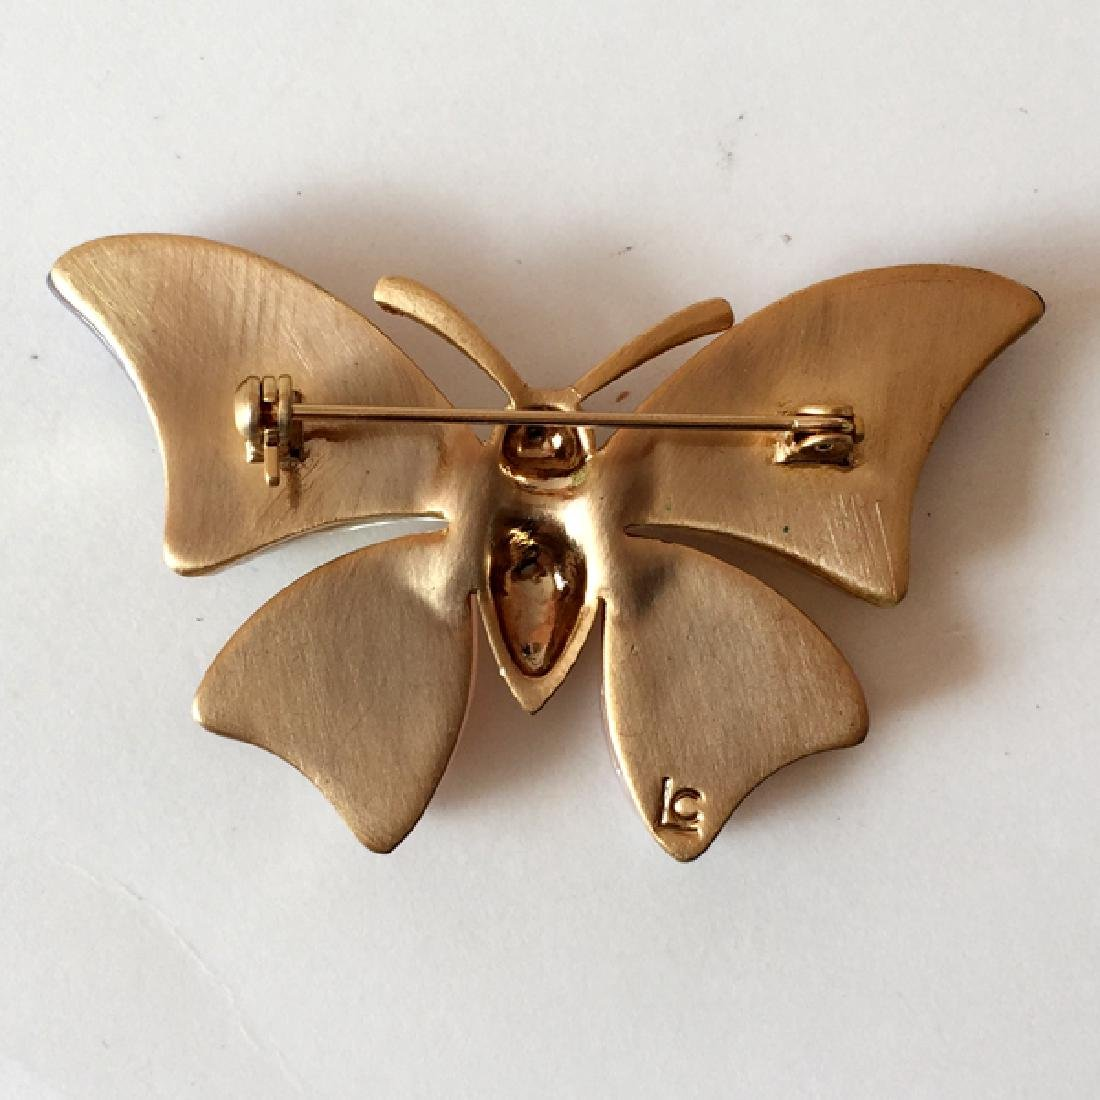 LIZ CLAIBORNE: Gold plated BUTTERFLY shaped brooch with - 2